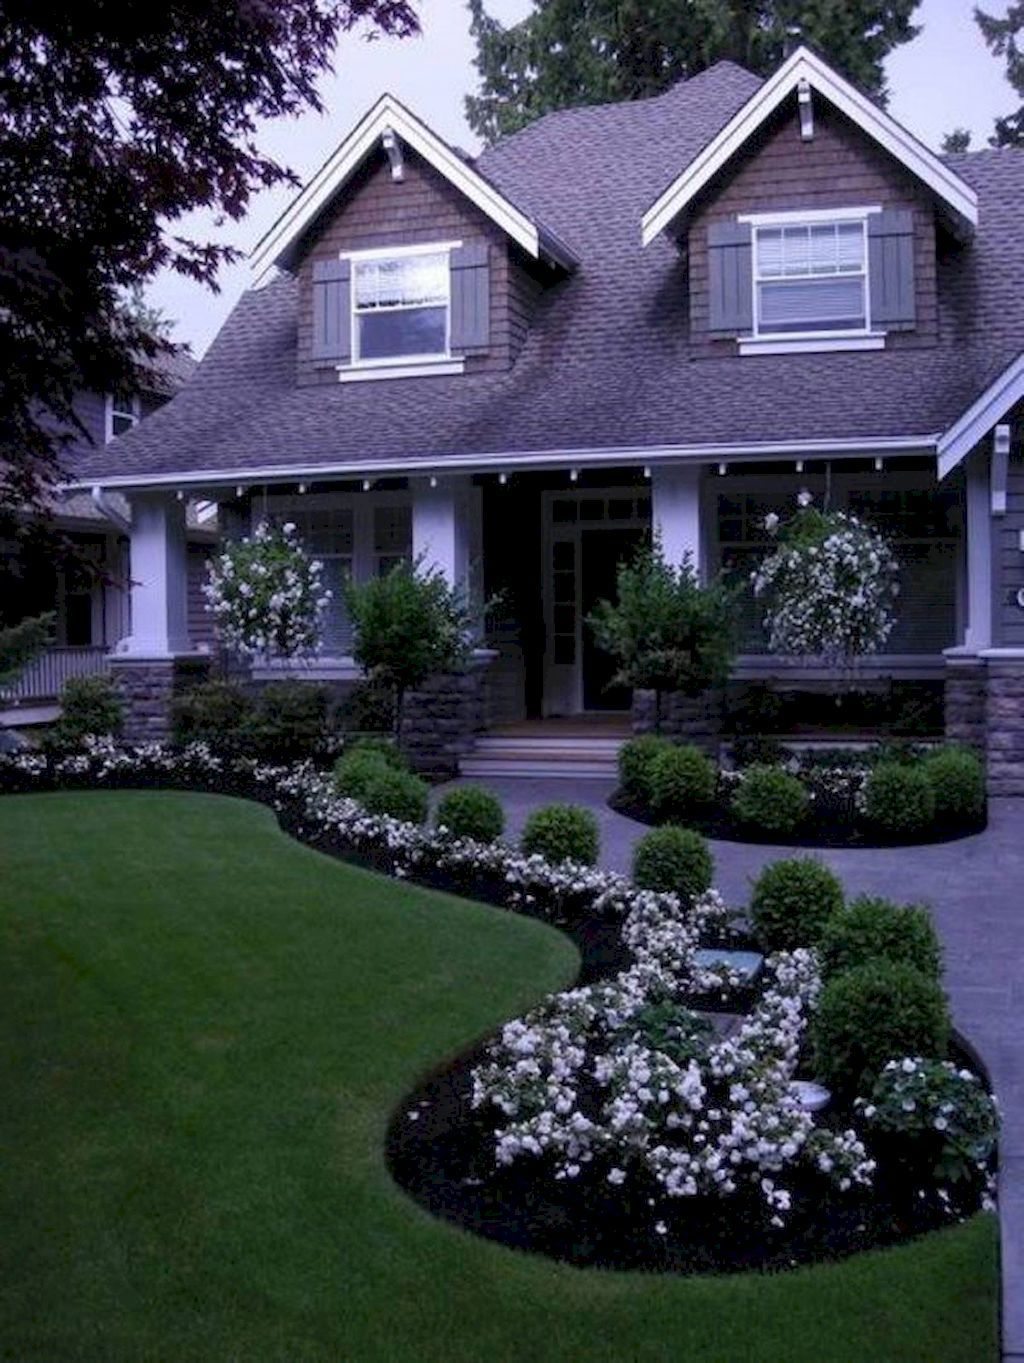 40 beautiful front yard landscaping ideas yard for Front yard landscaping